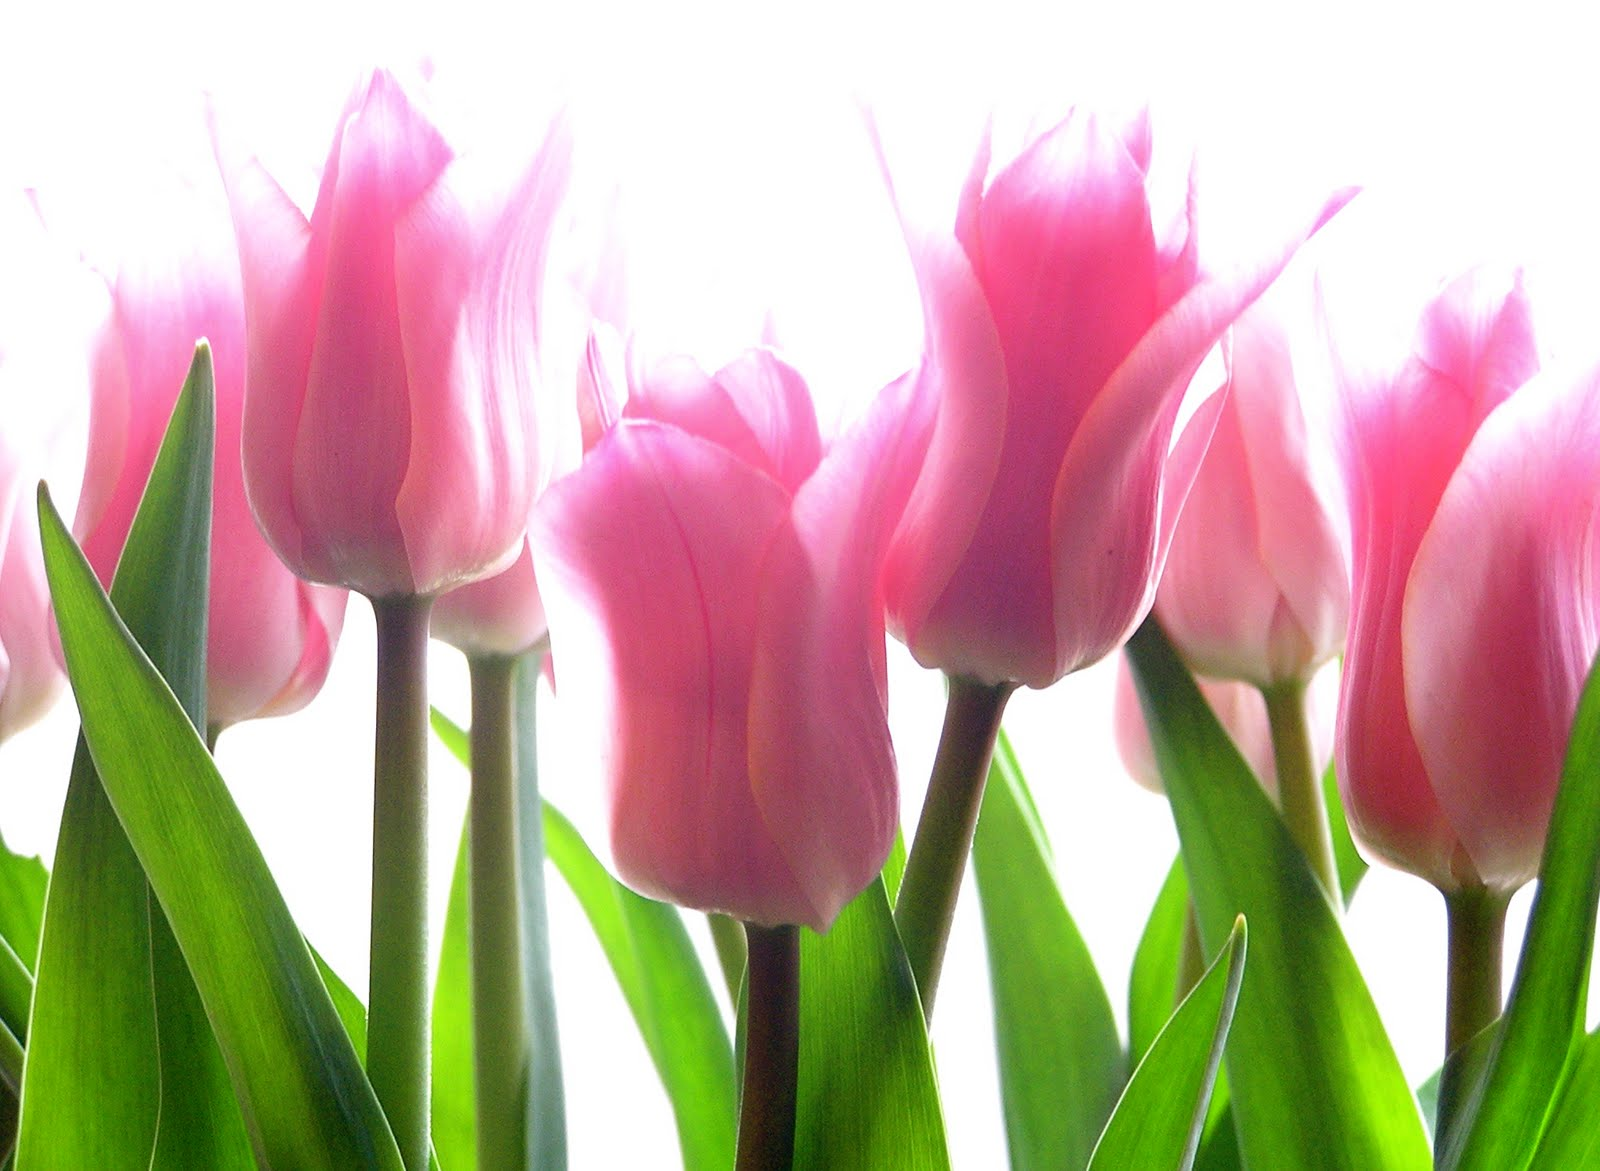 870587-pink-tulips